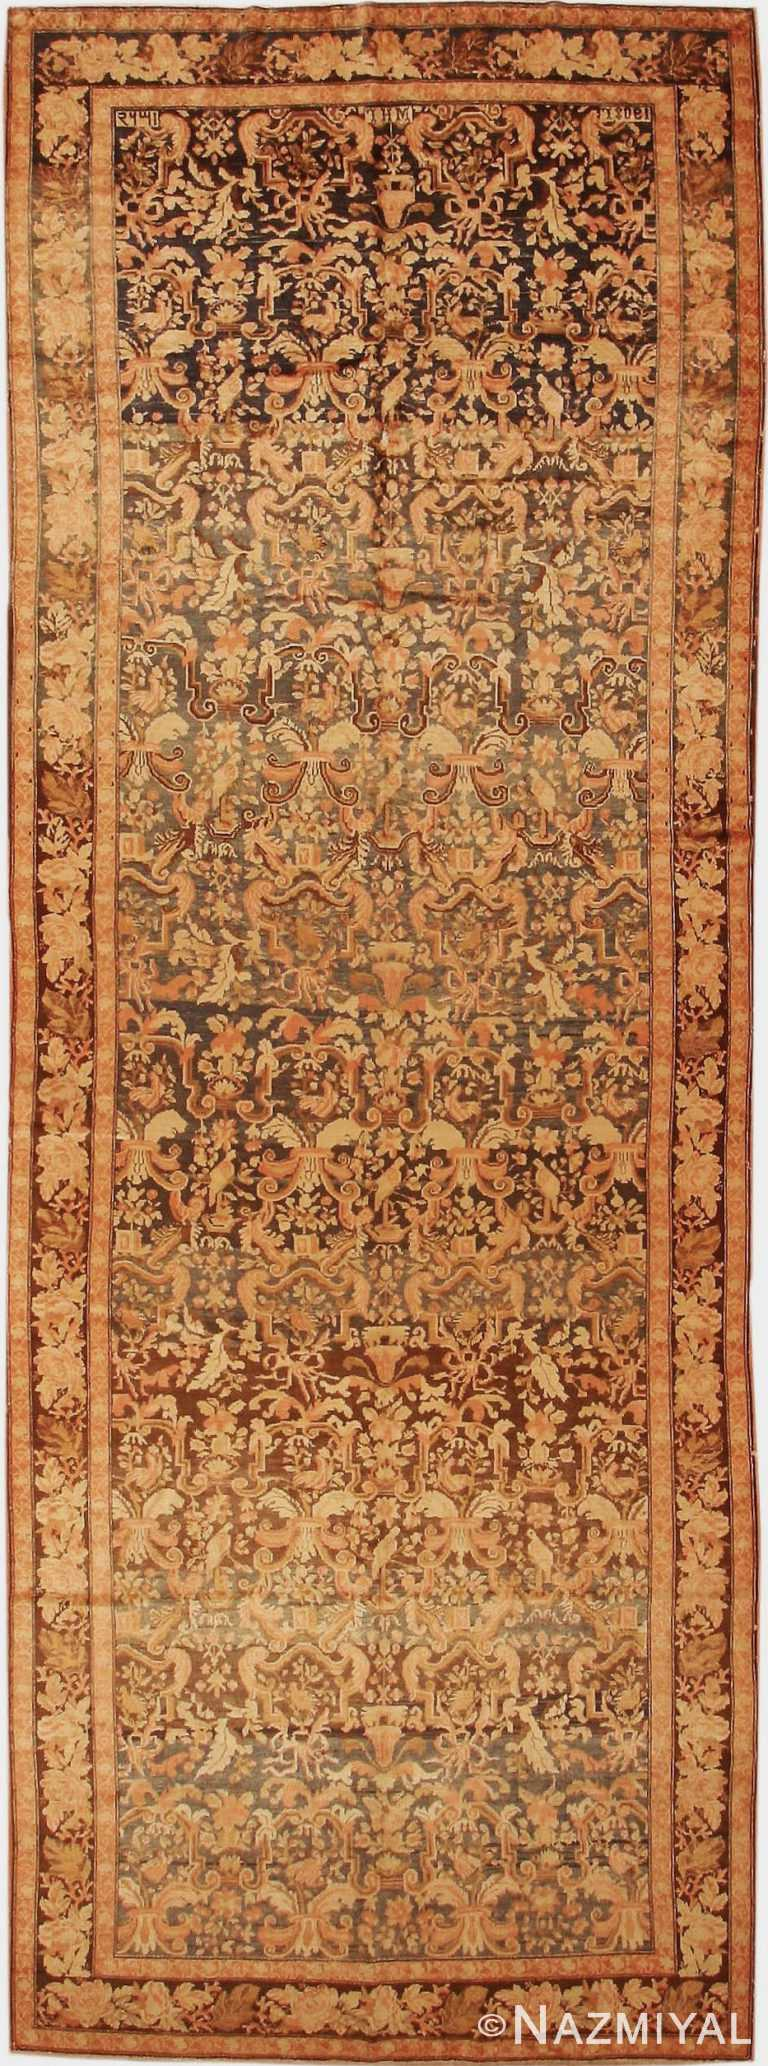 Antique Caucasian Karabagh Wide Hallway Gallery Rug #44114 by Nazmiyal Antique Rugs